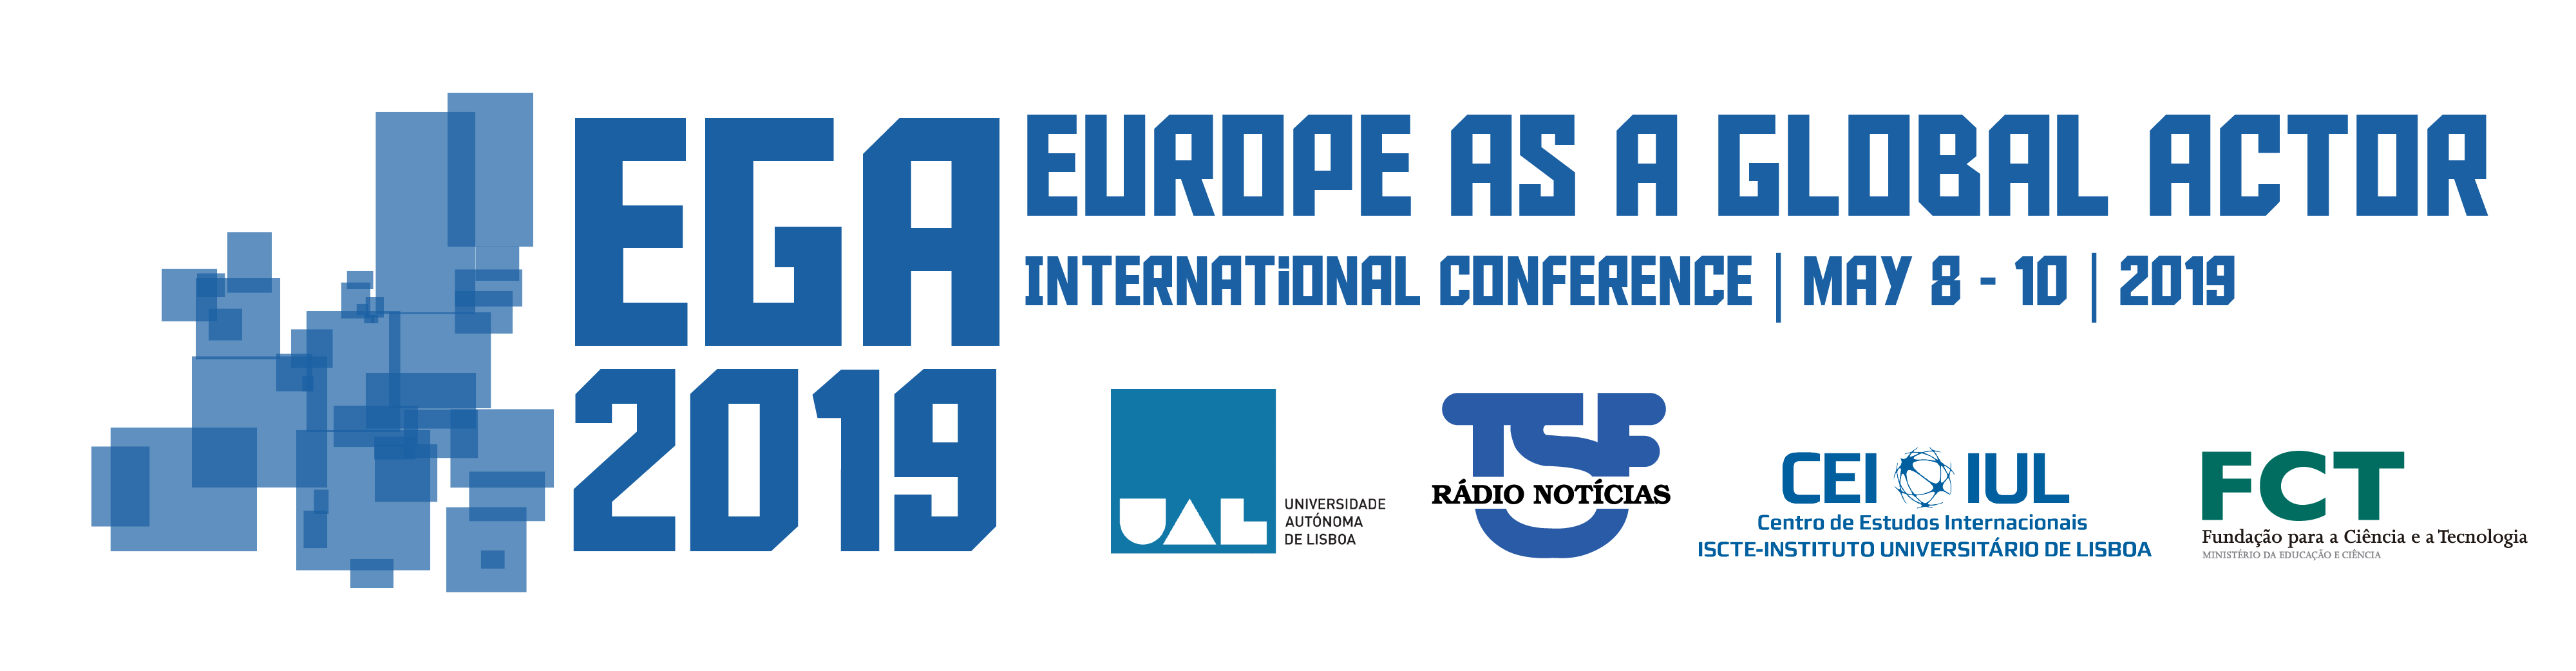 "Call for papers: 4th International Conference ""Europe as a global actor"""